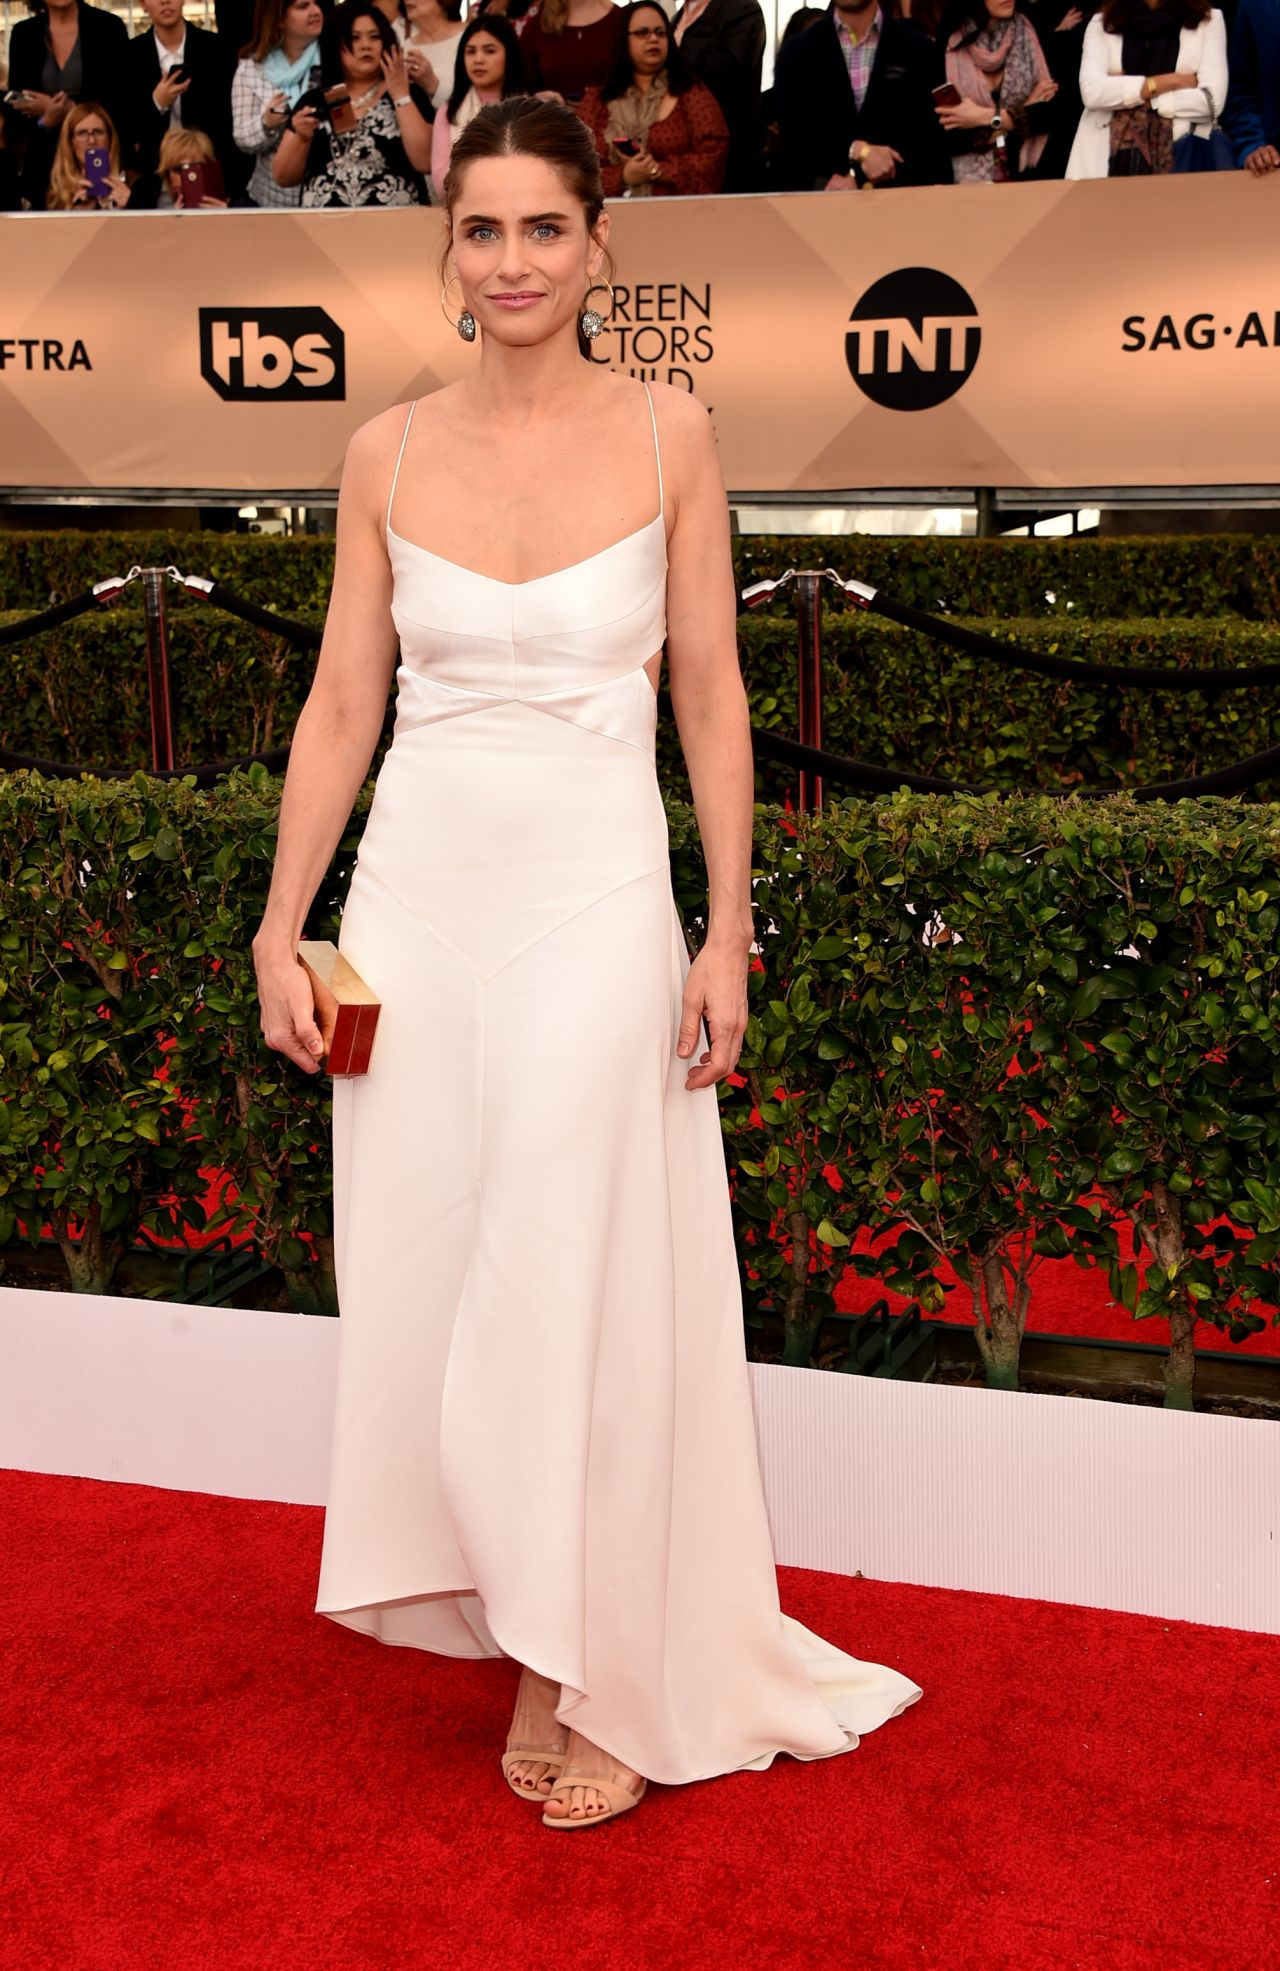 amanda-peet-sag-awards-2016-at-shrine-auditorium-in-los-angeles-1